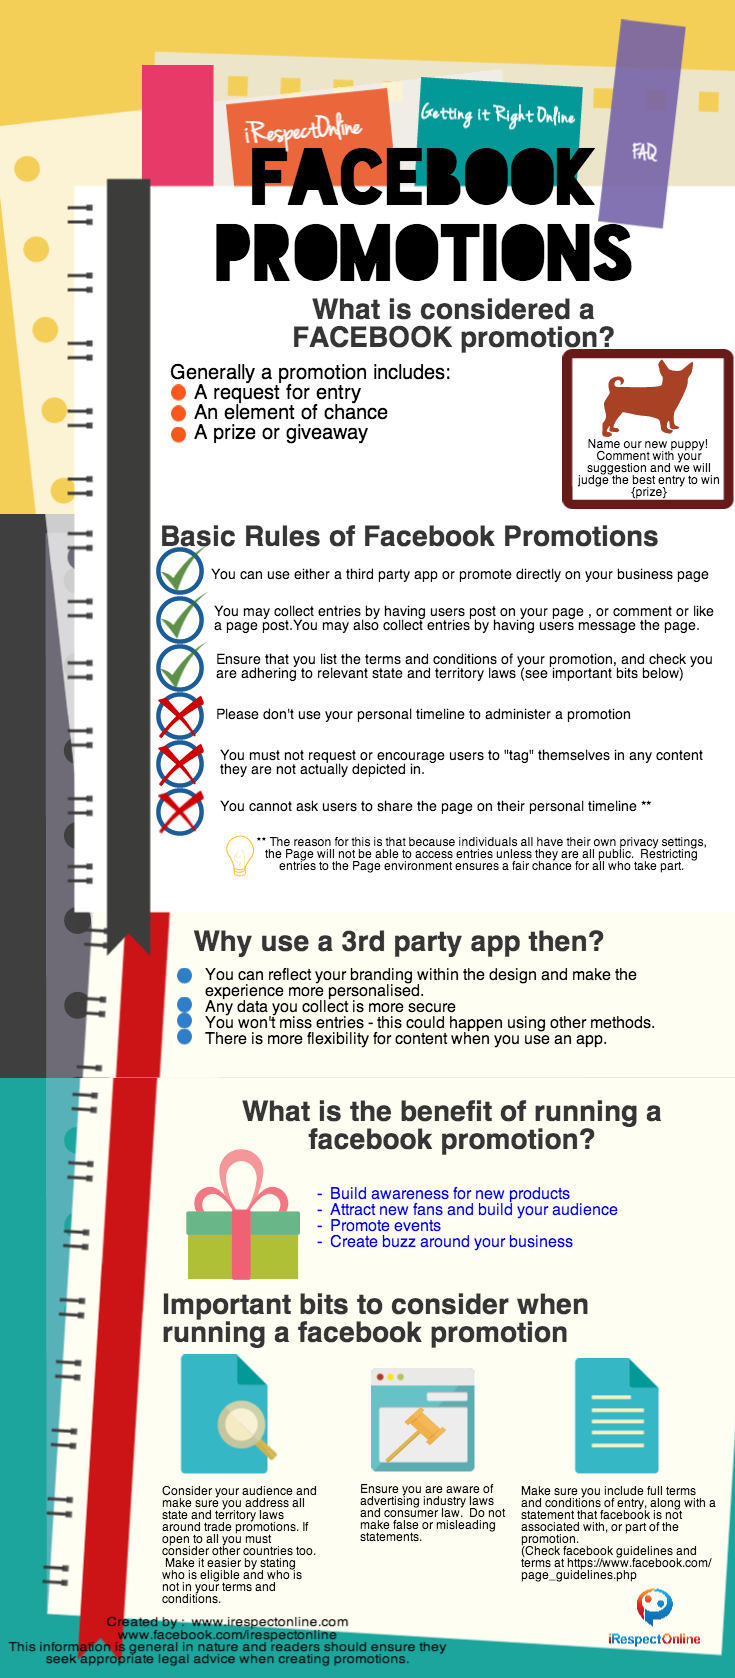 facebook promotions by irespectonline